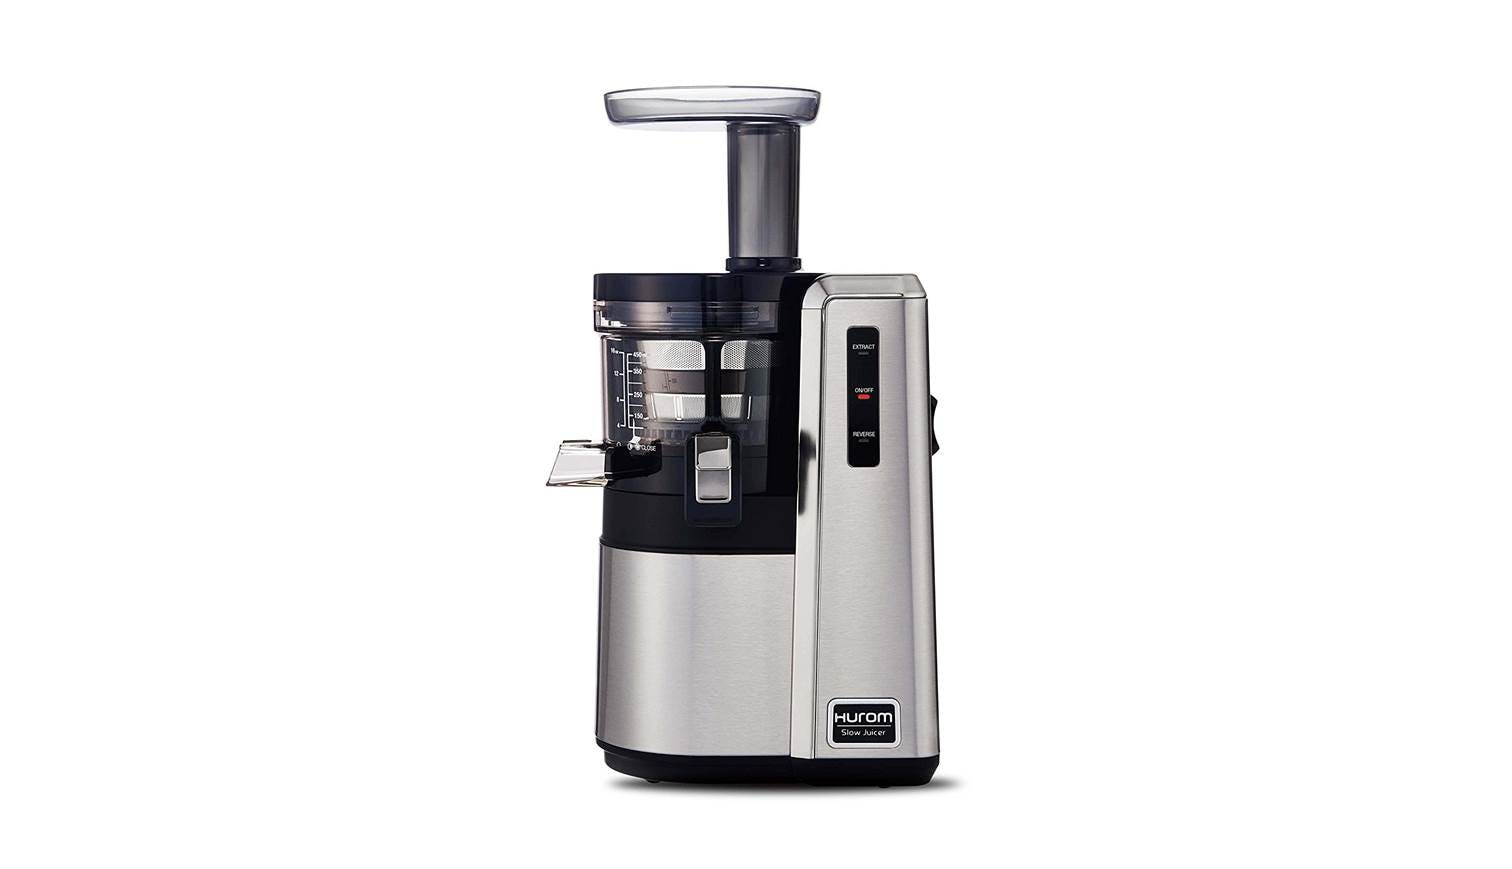 Hurom Slow Juicer Cleaning Brush : Hurom HZ2500S Slow Juicer Harvey Norman Singapore